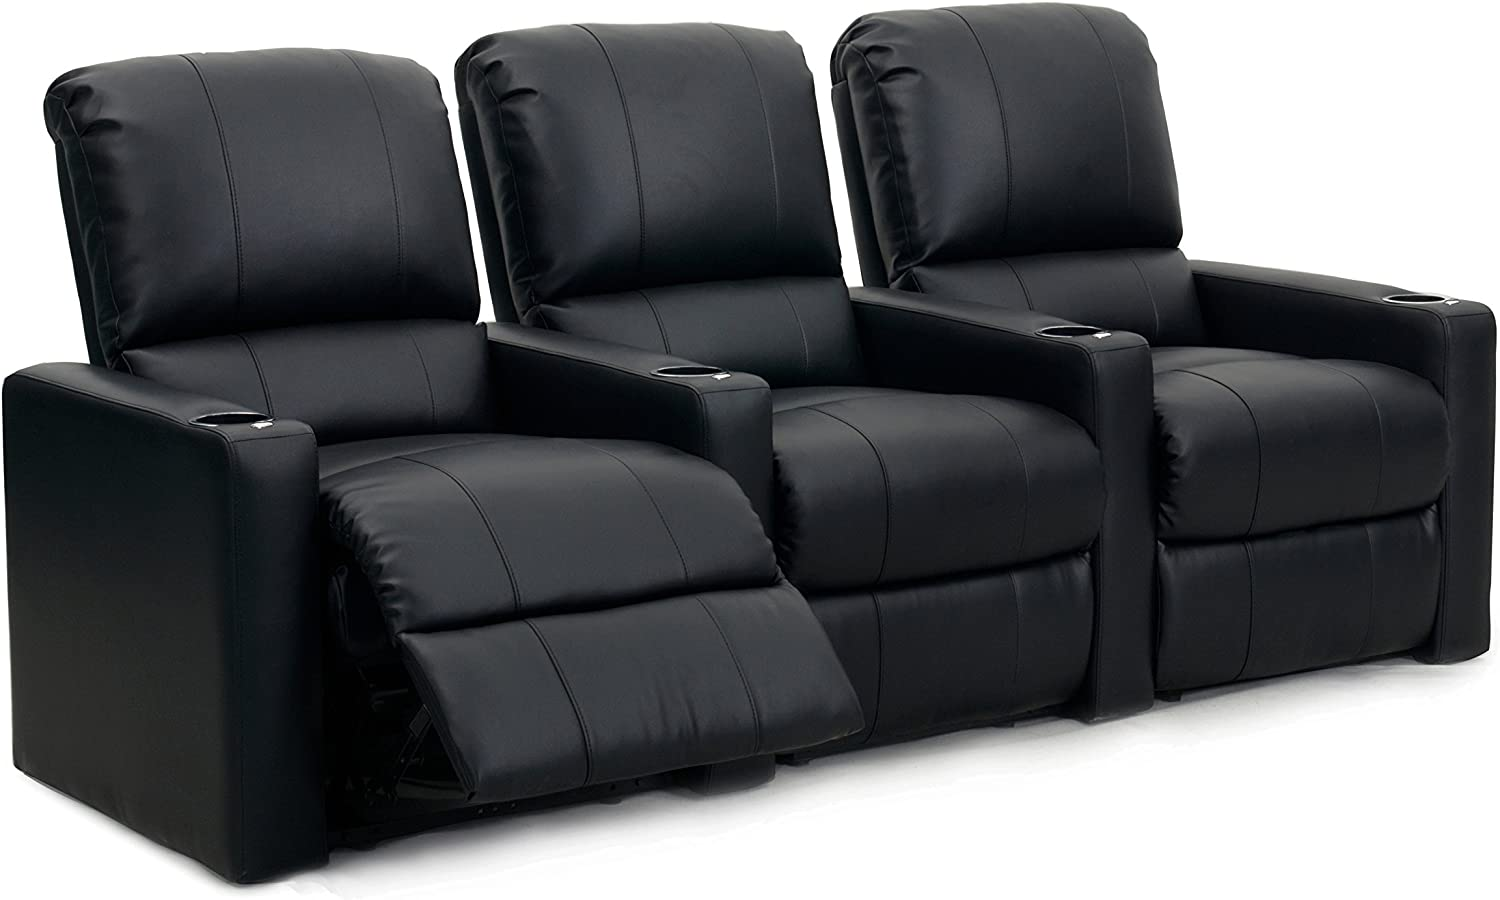 Octane Seating Octane Charger XS300 Leather Home Theater Recliner Set (Row of 3), Black